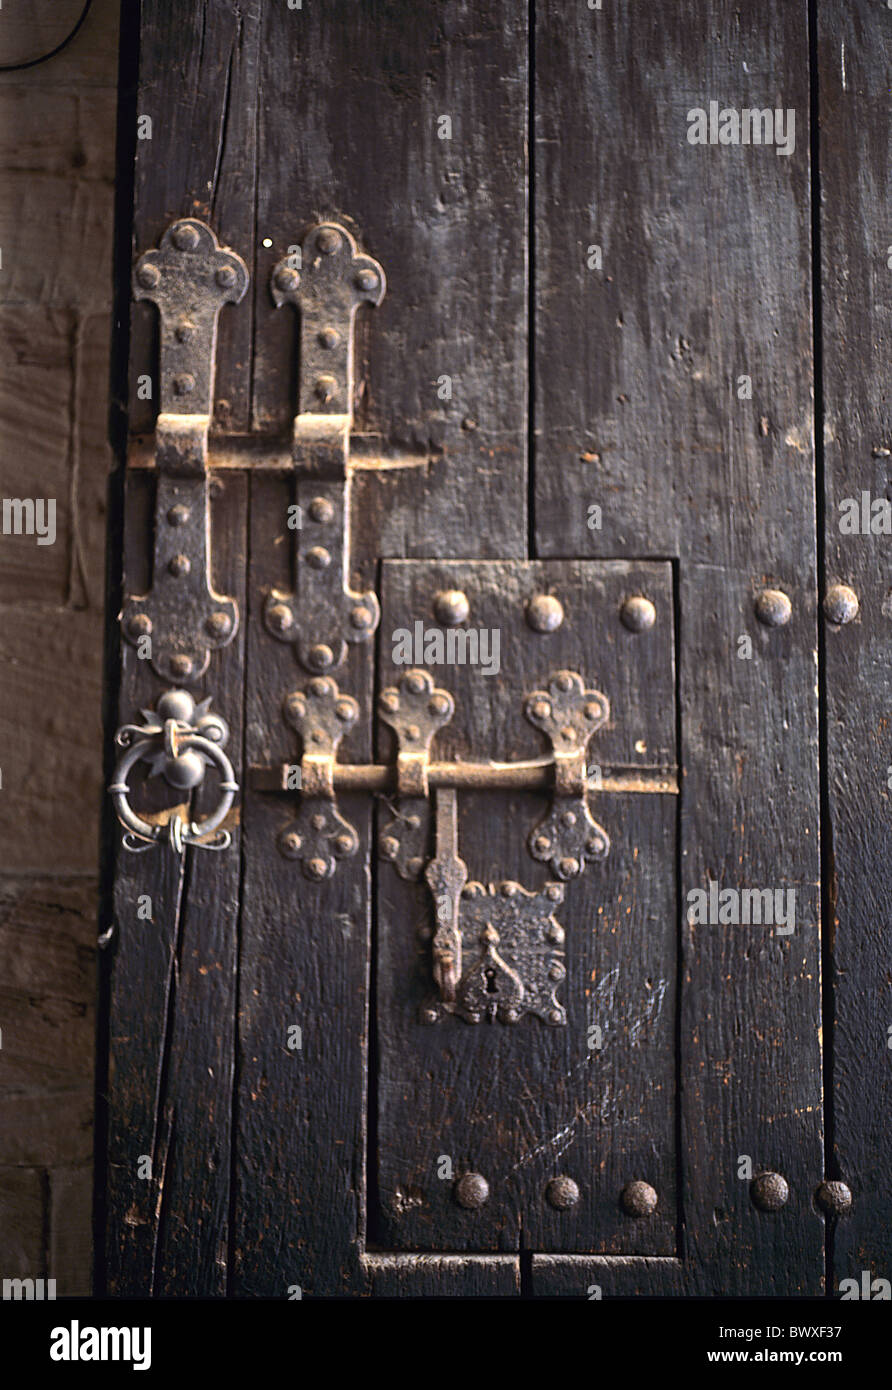 Medieval Door Lock Stock Photos Amp Medieval Door Lock Stock